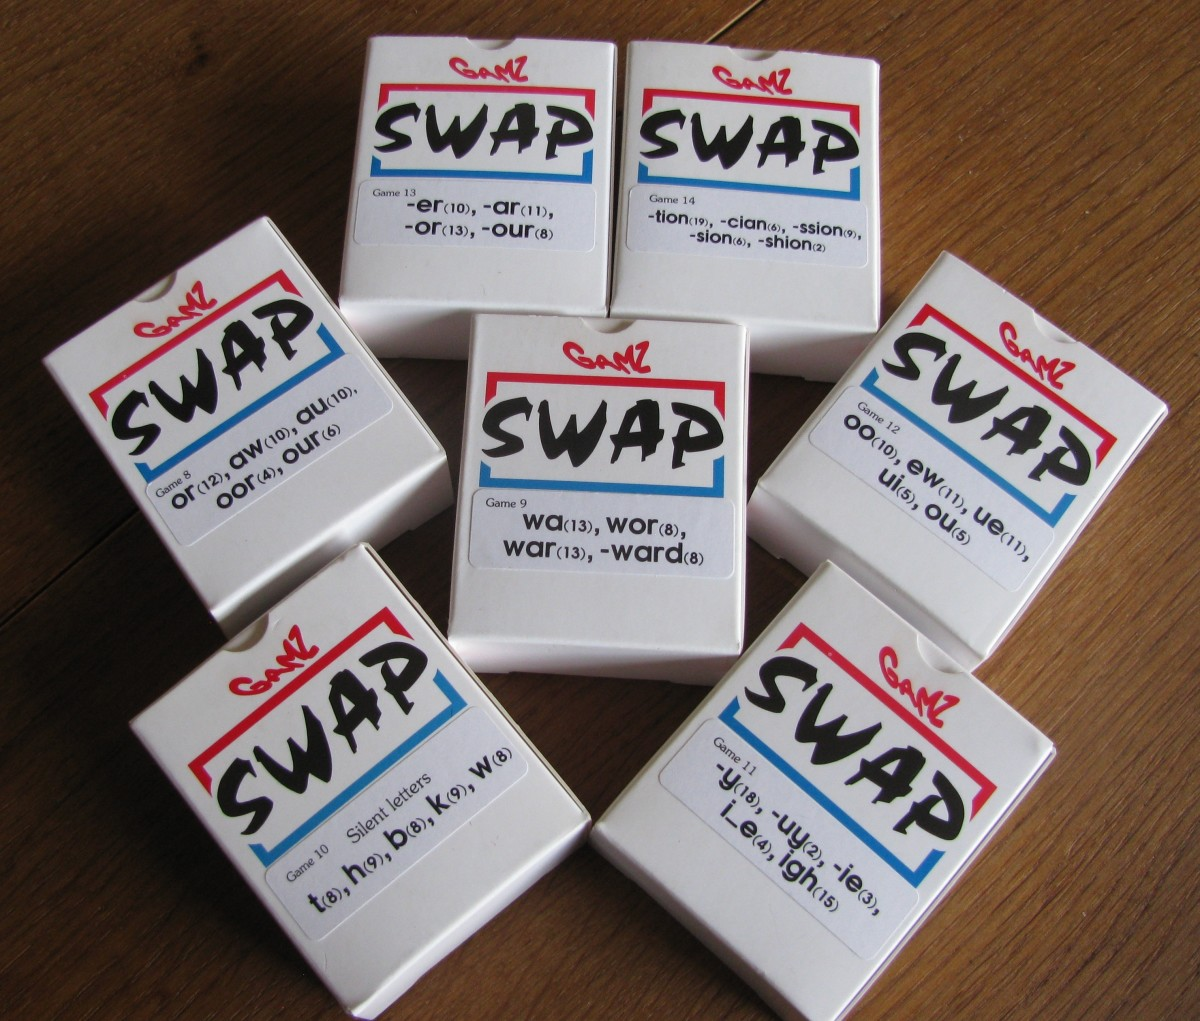 More of the 'SWAP' games; there are many sets on offer, to suit progressive abilities